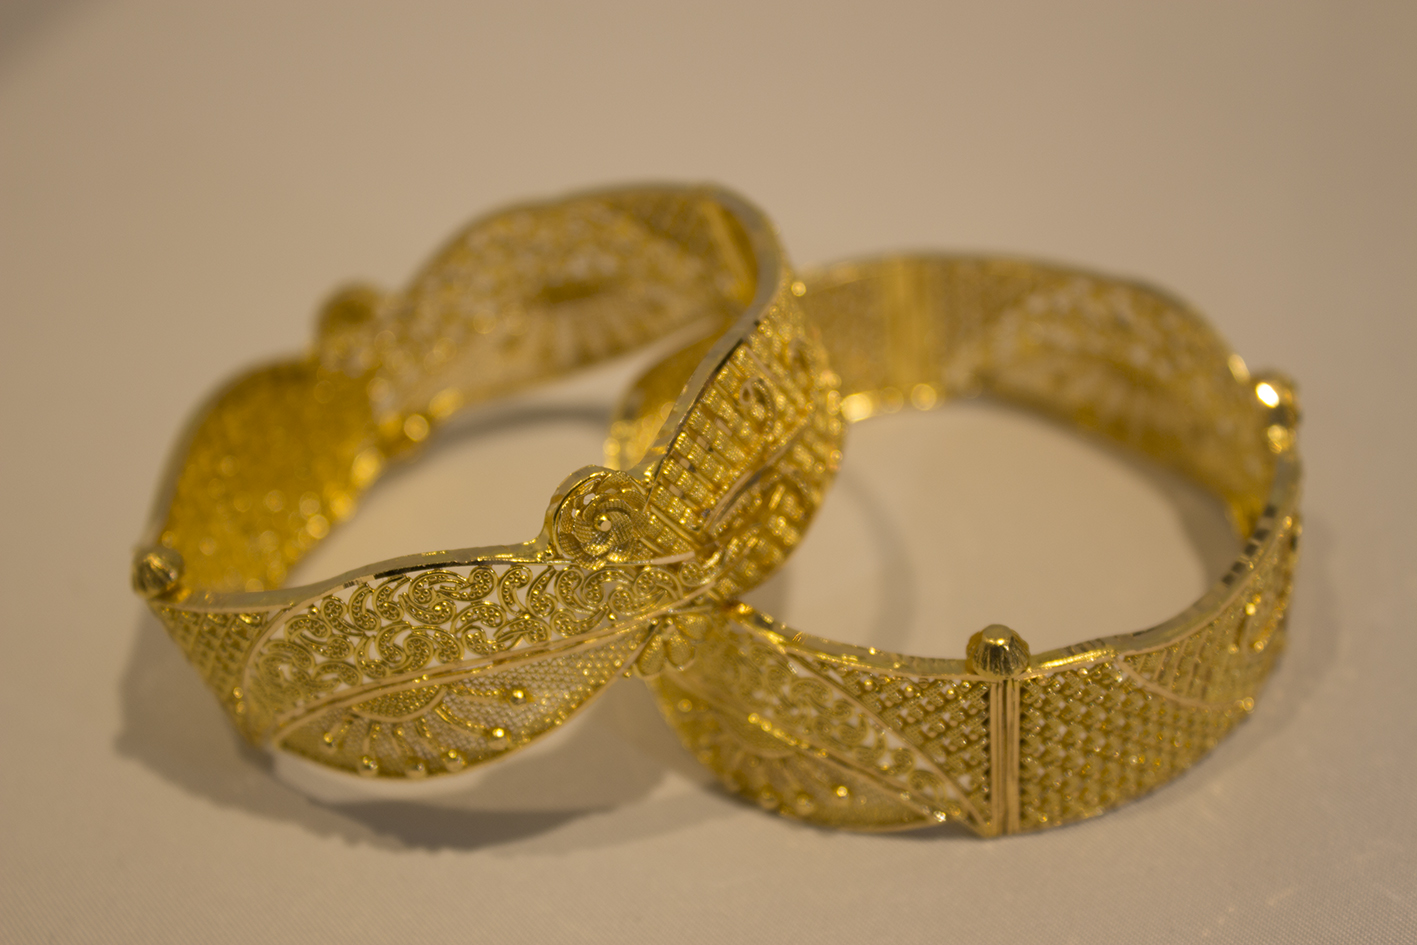 22ct Gold Bangles With Intricate Filigree Cut Design